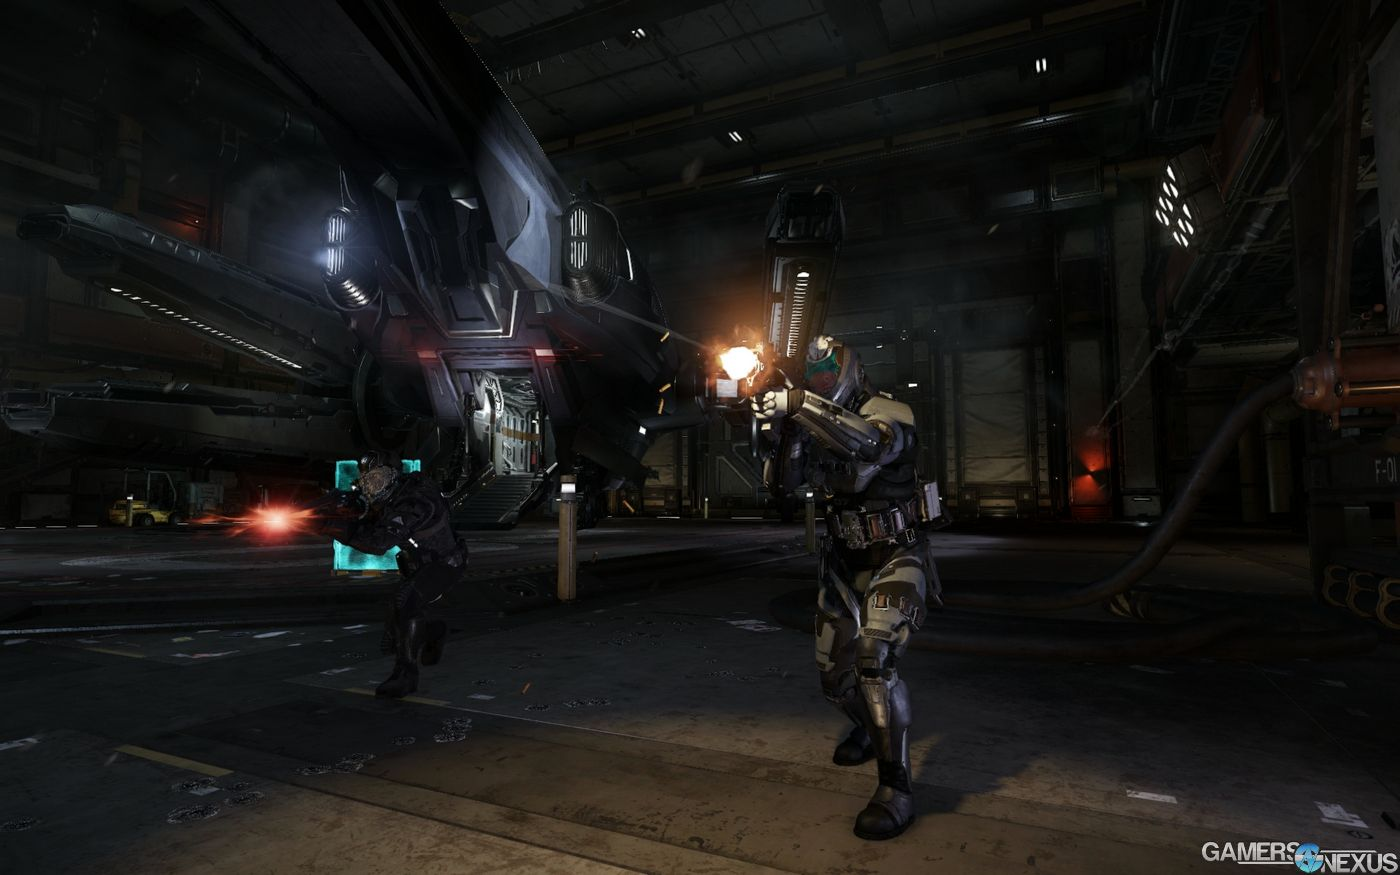 Star Citizen Fps Module Screenshots Gameplay Preview Gamersnexus Gaming Pc Builds Hardware Benchmarks